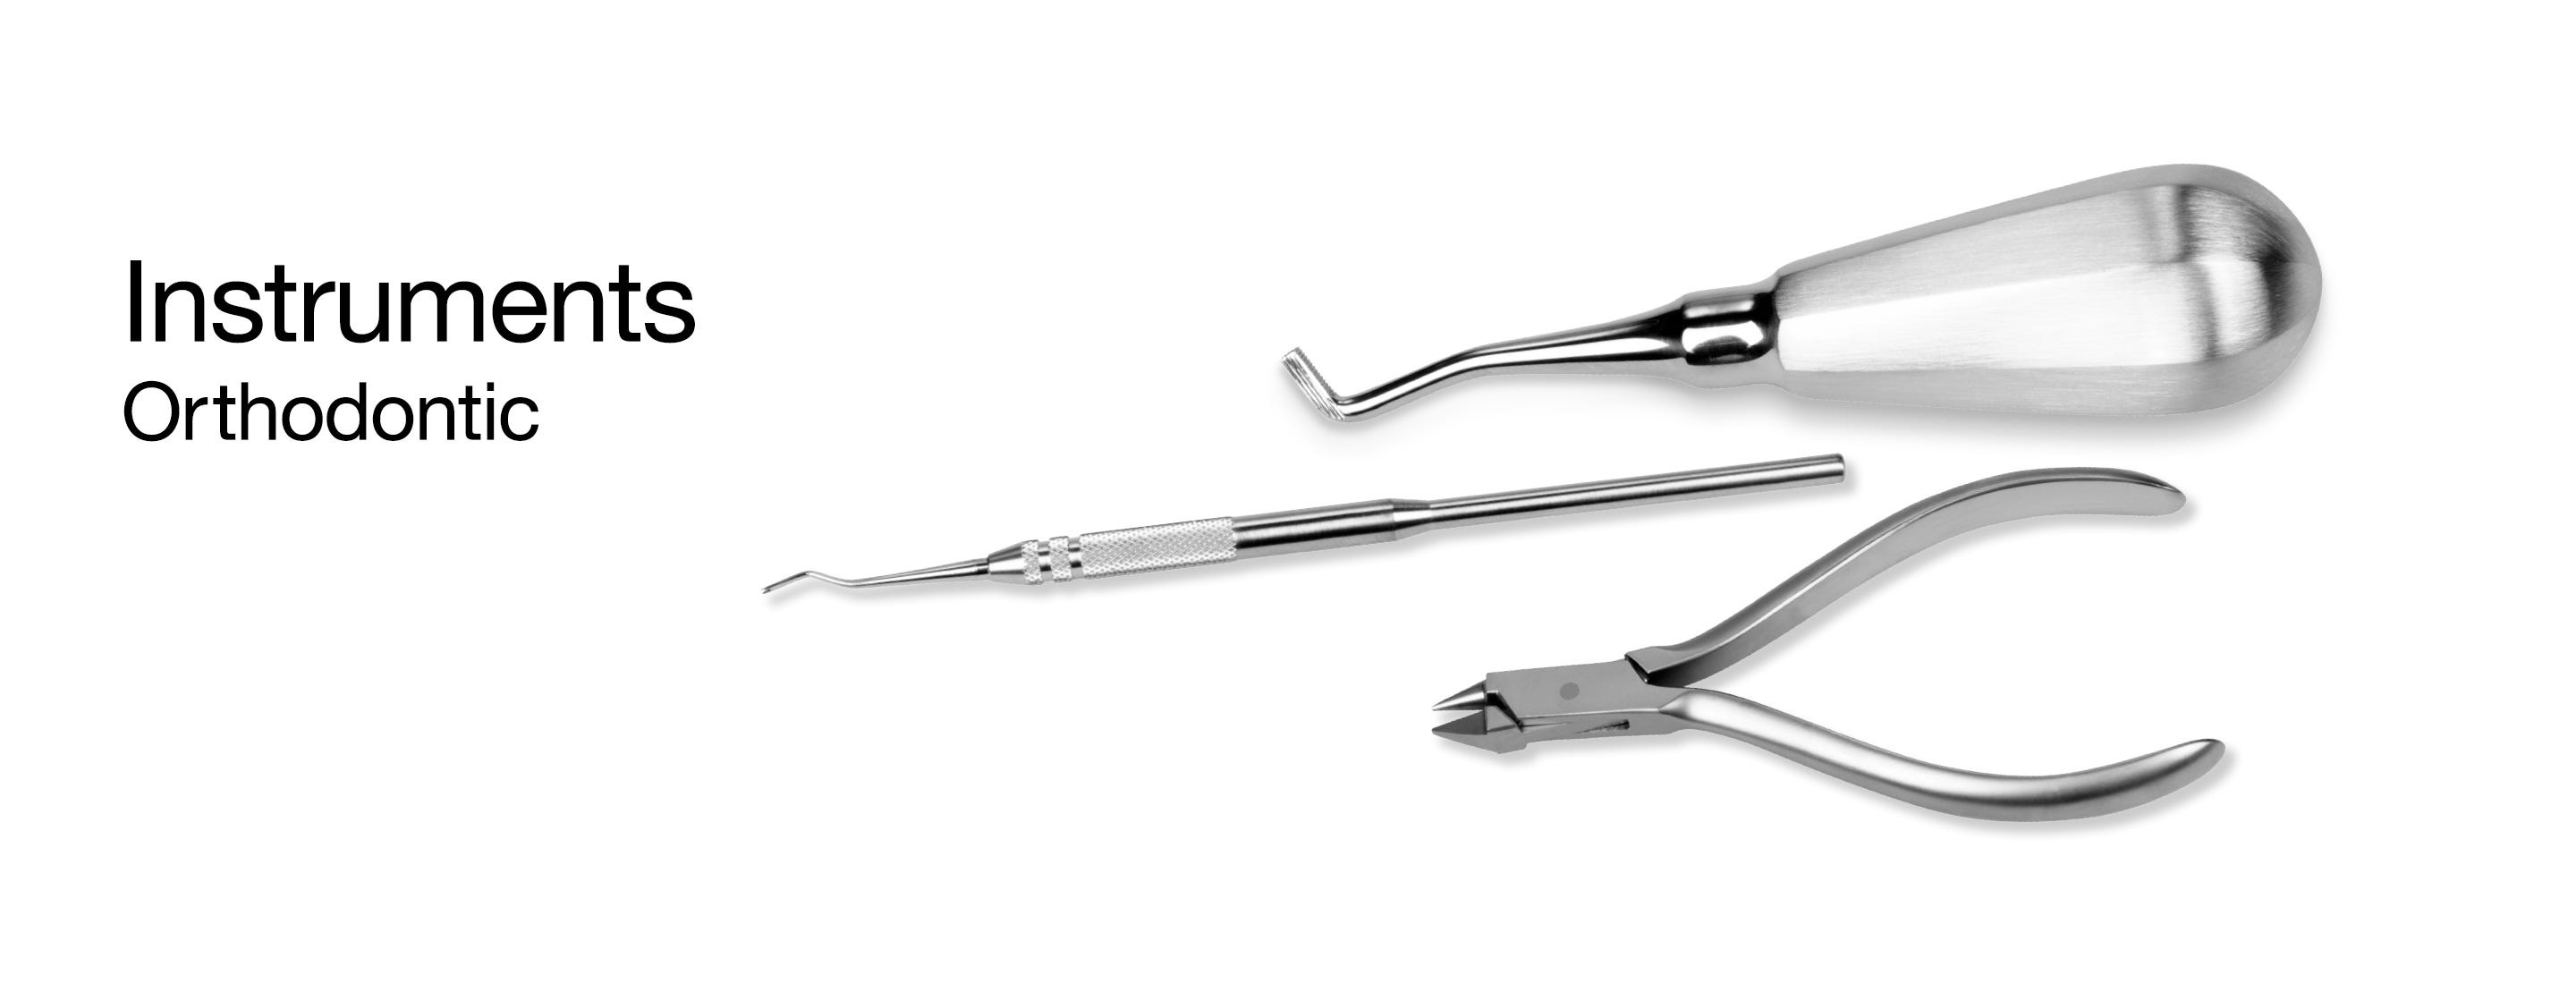 Carefully crafted by skilled professionals, DenMat's Hartzell® orthodontic instruments have maintained the same high standards of manufacturing excellence established by their founders in 1935.